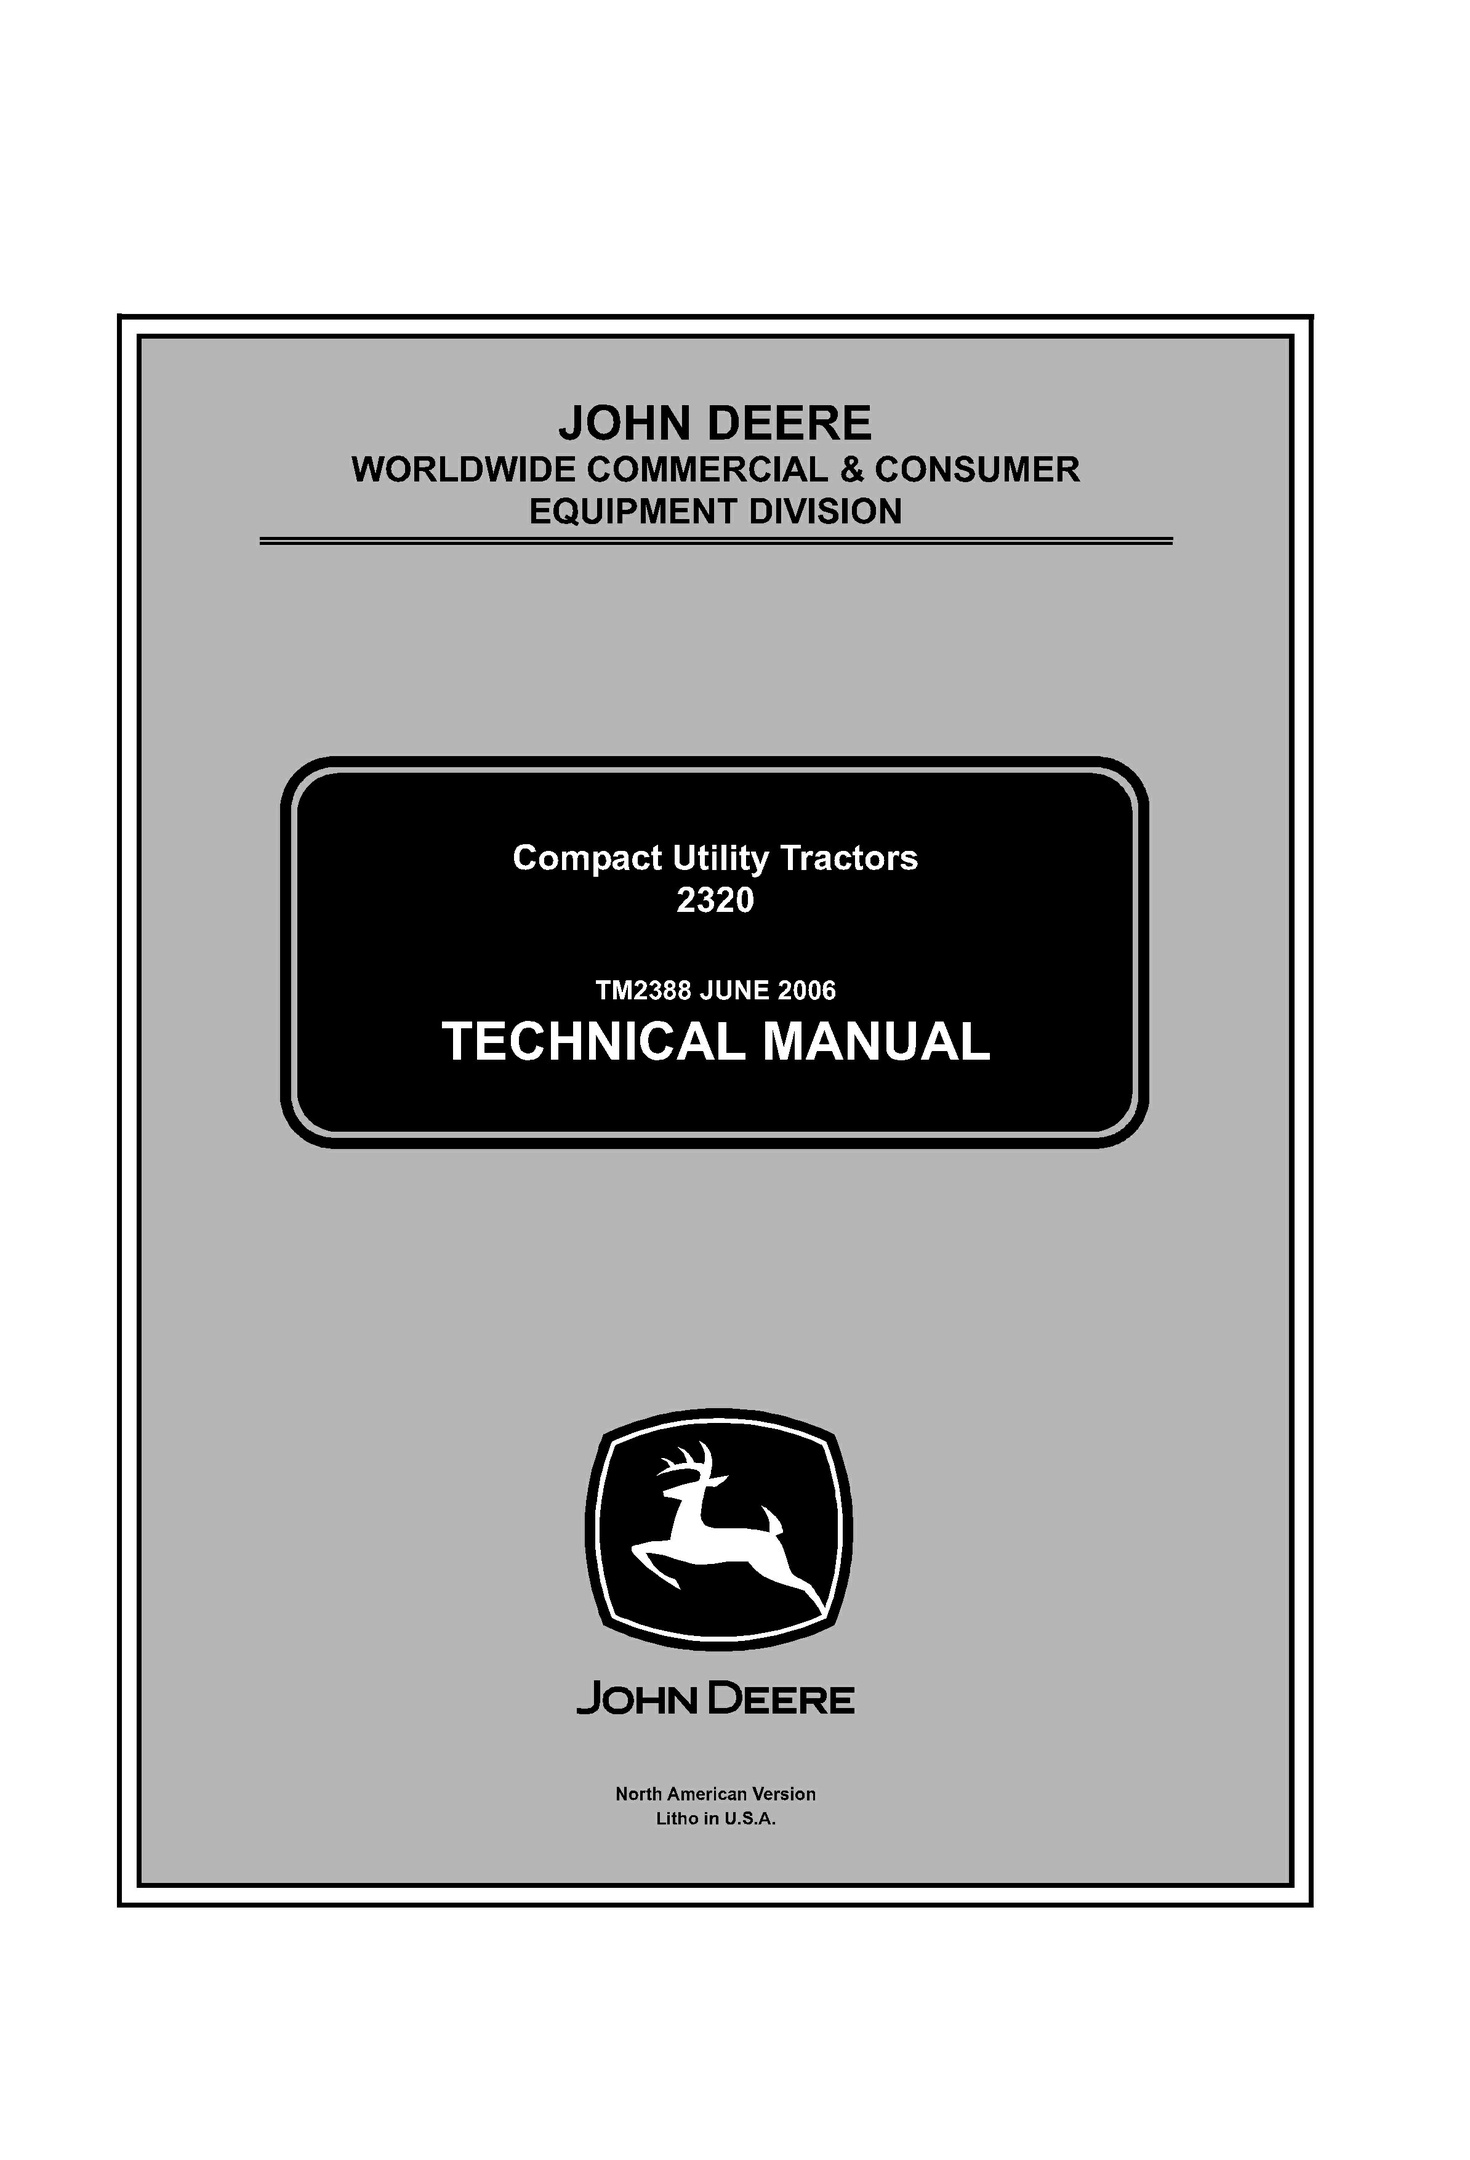 John Deere Mower Manuals Free Download Trusted Wiring Diagrams 8960 Diagram 2320 Compact Utility Tractor Servi Rh Sellfy Com Manual